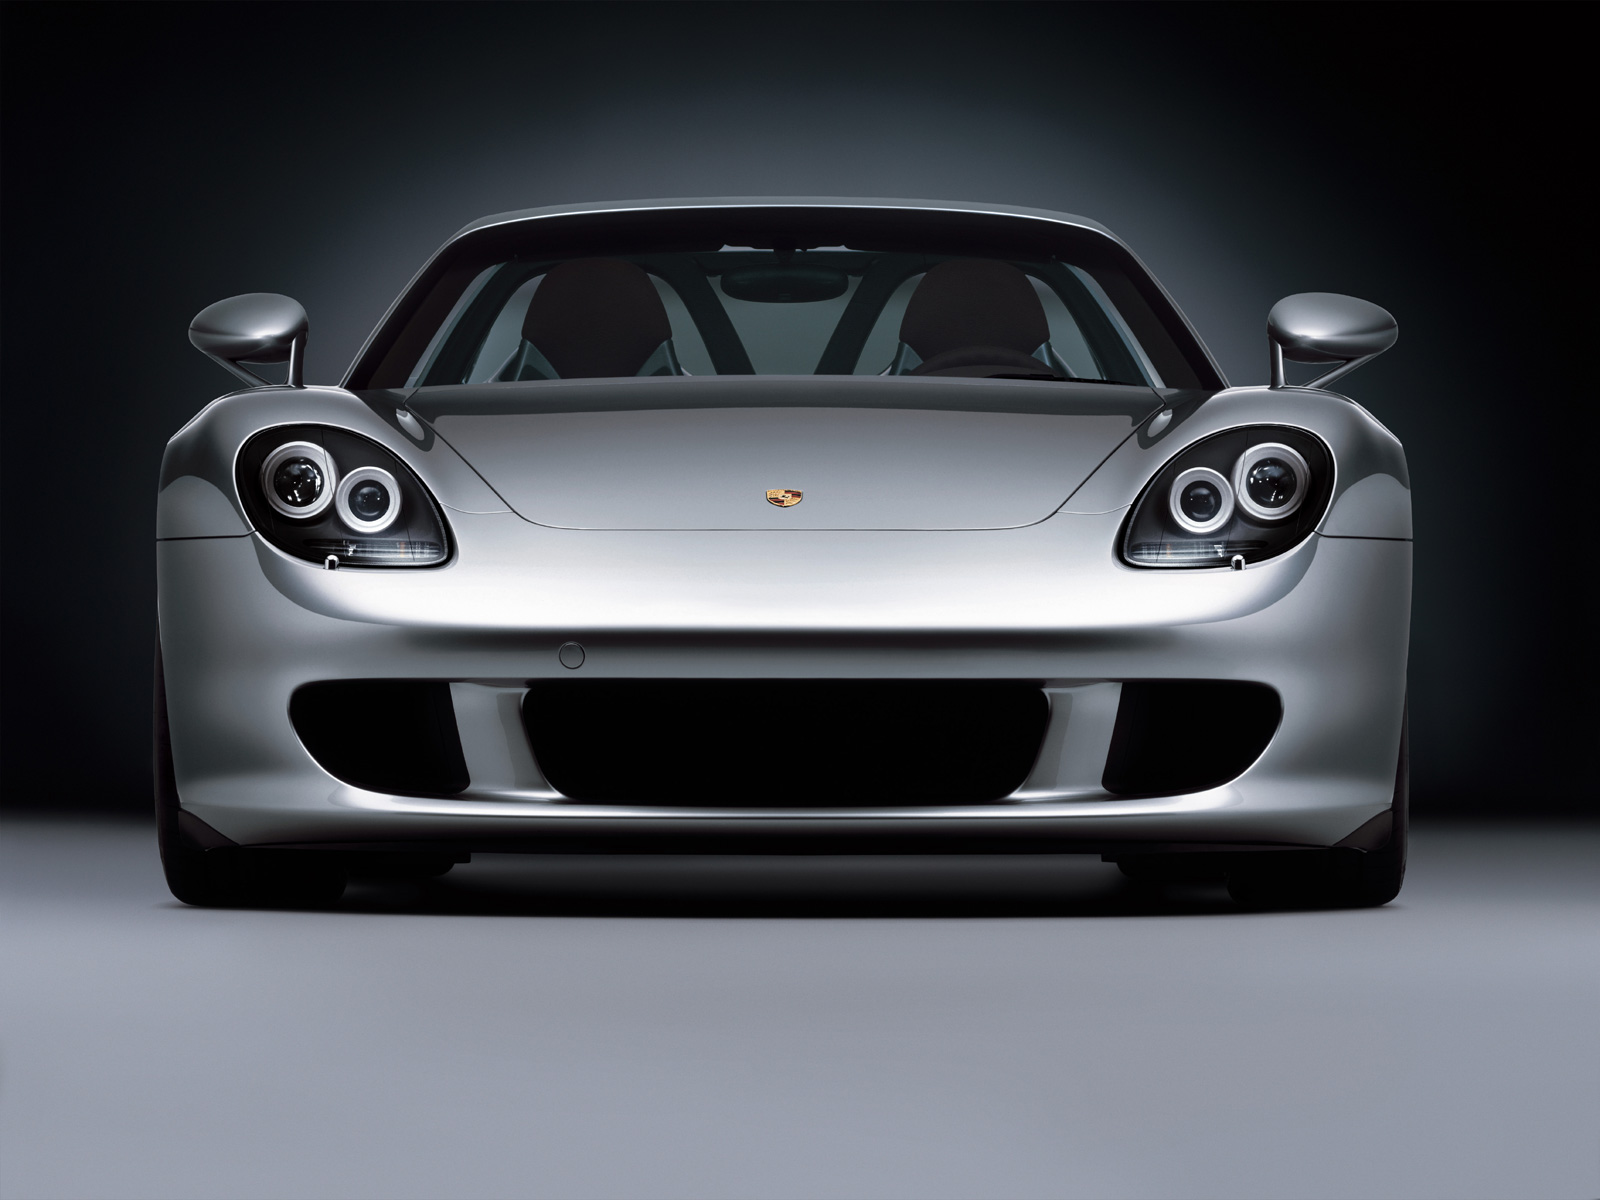 Porsche Carrera GT photo 8516